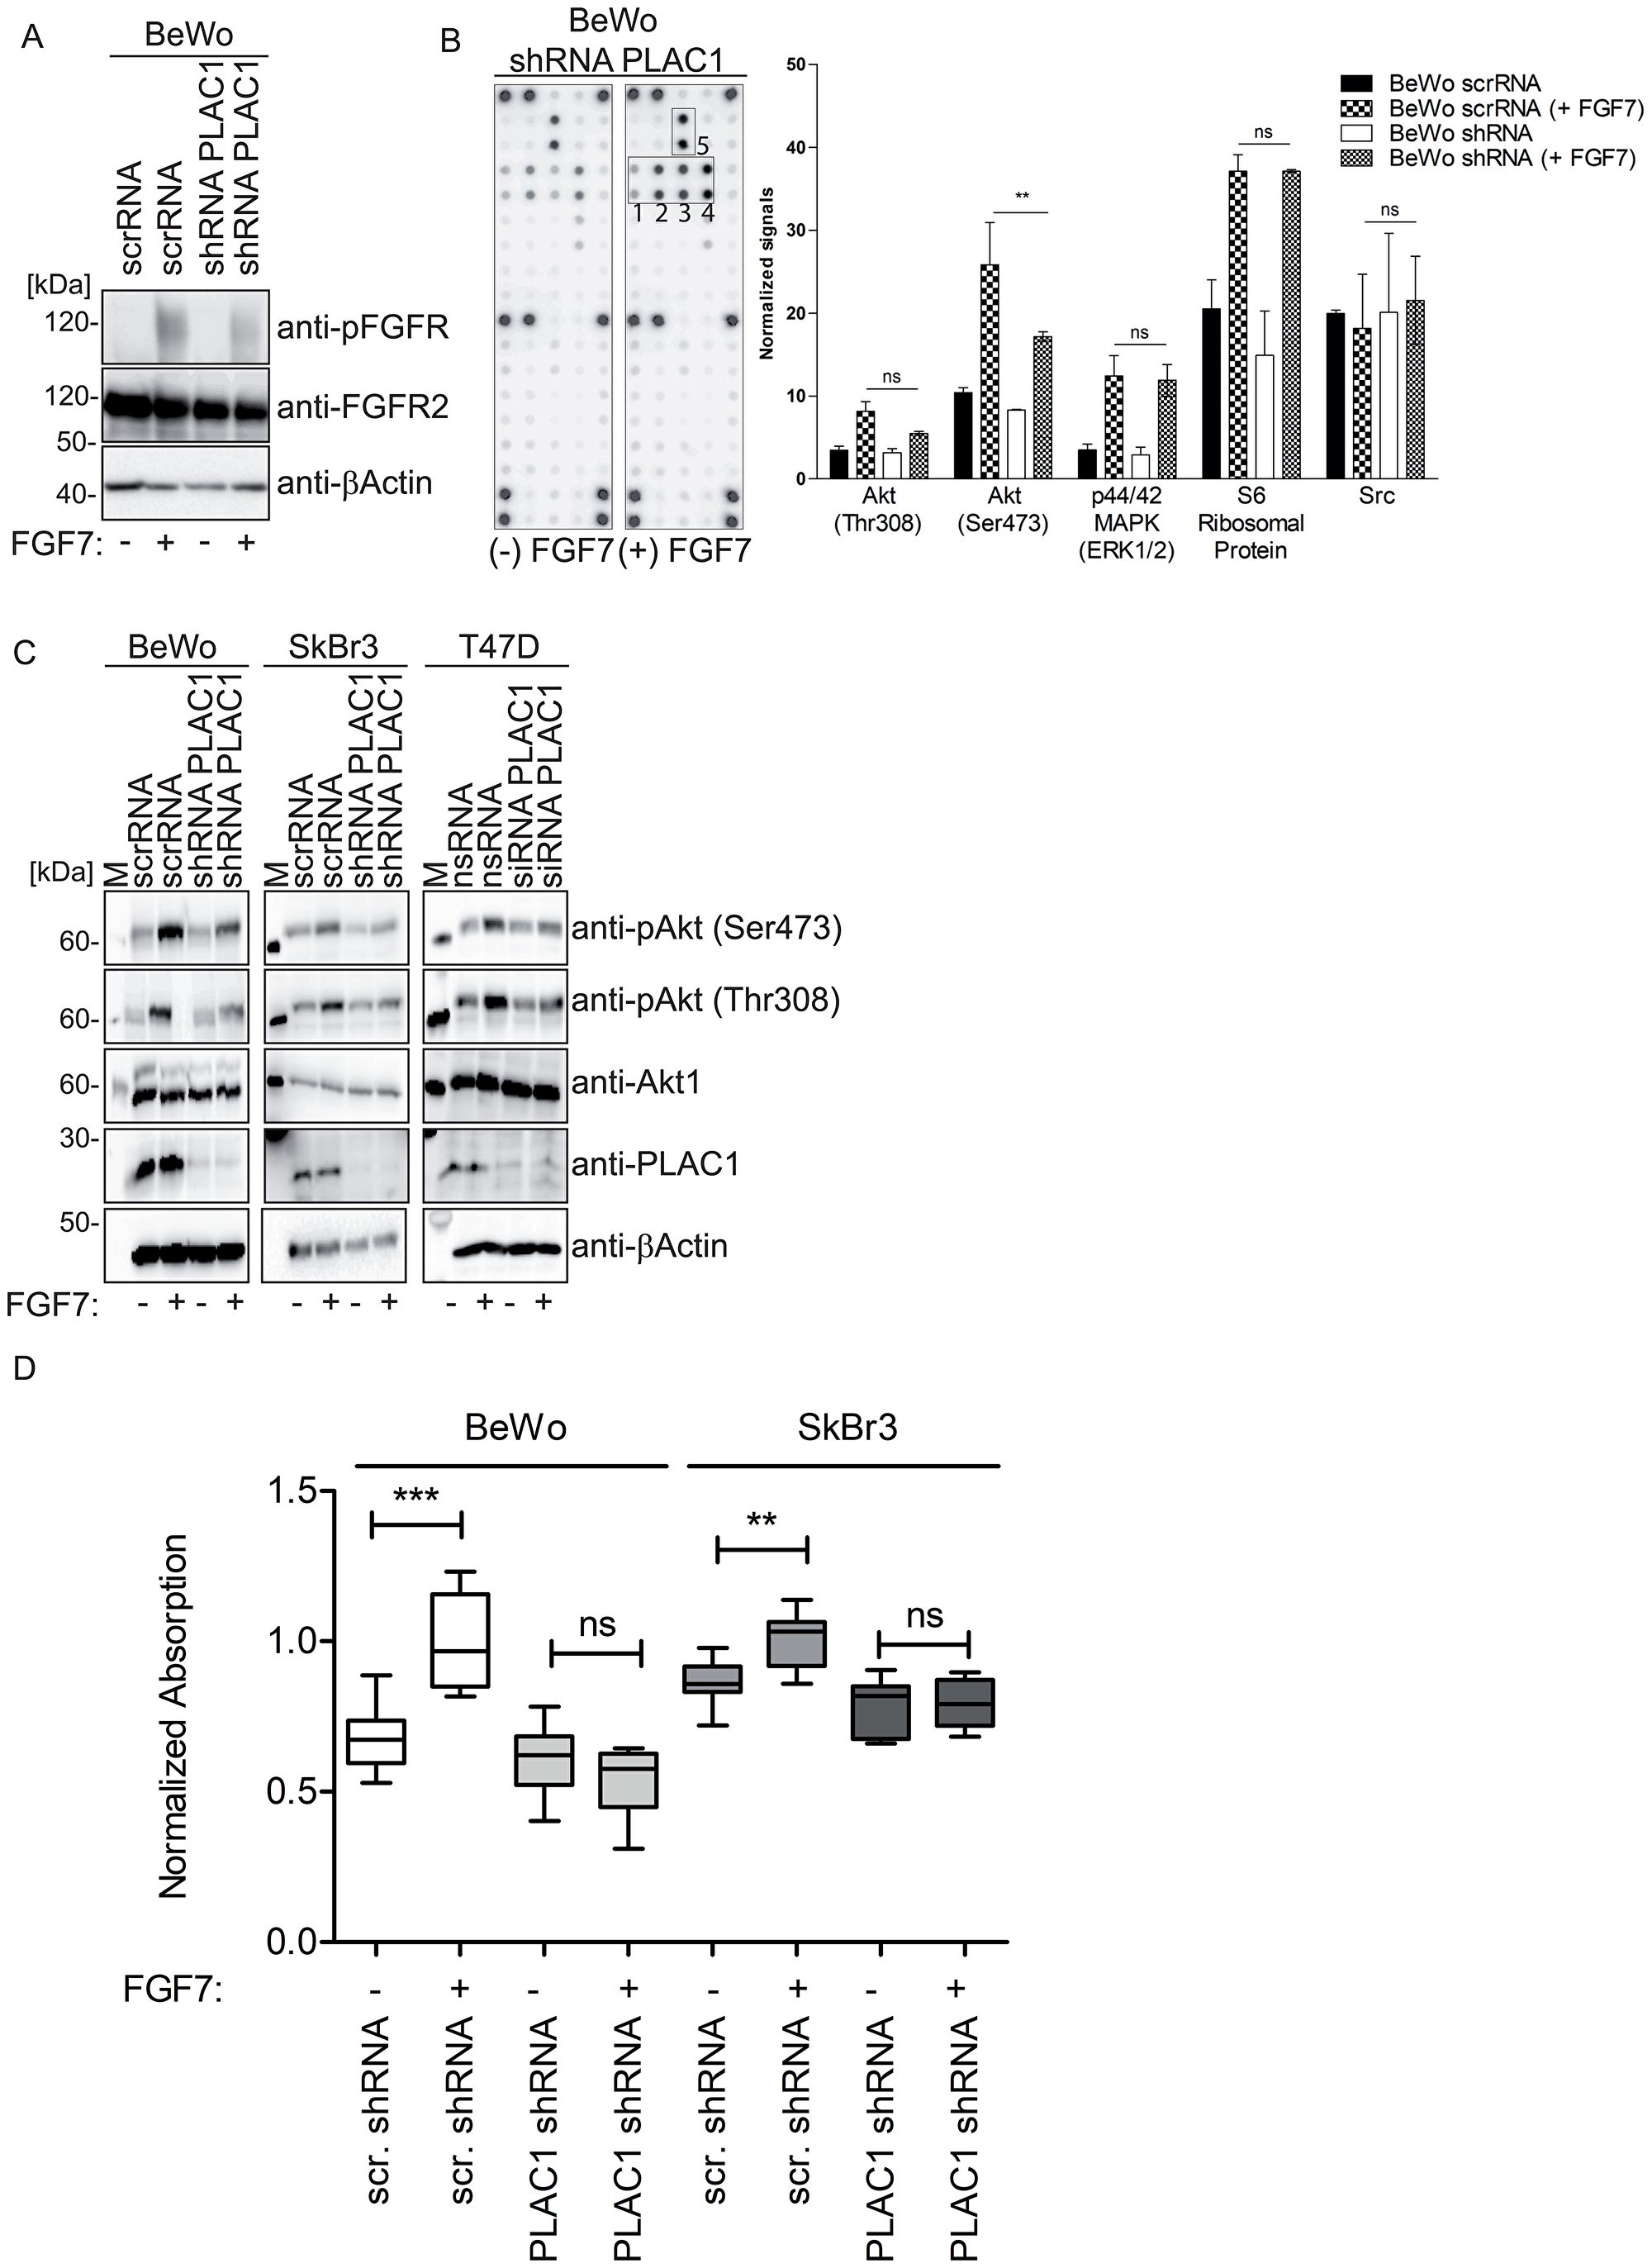 PLAC1 activates AKT phosphorylation in breast cancer and placental cells via FGFR2IIIbR signaling and mediates proliferation.